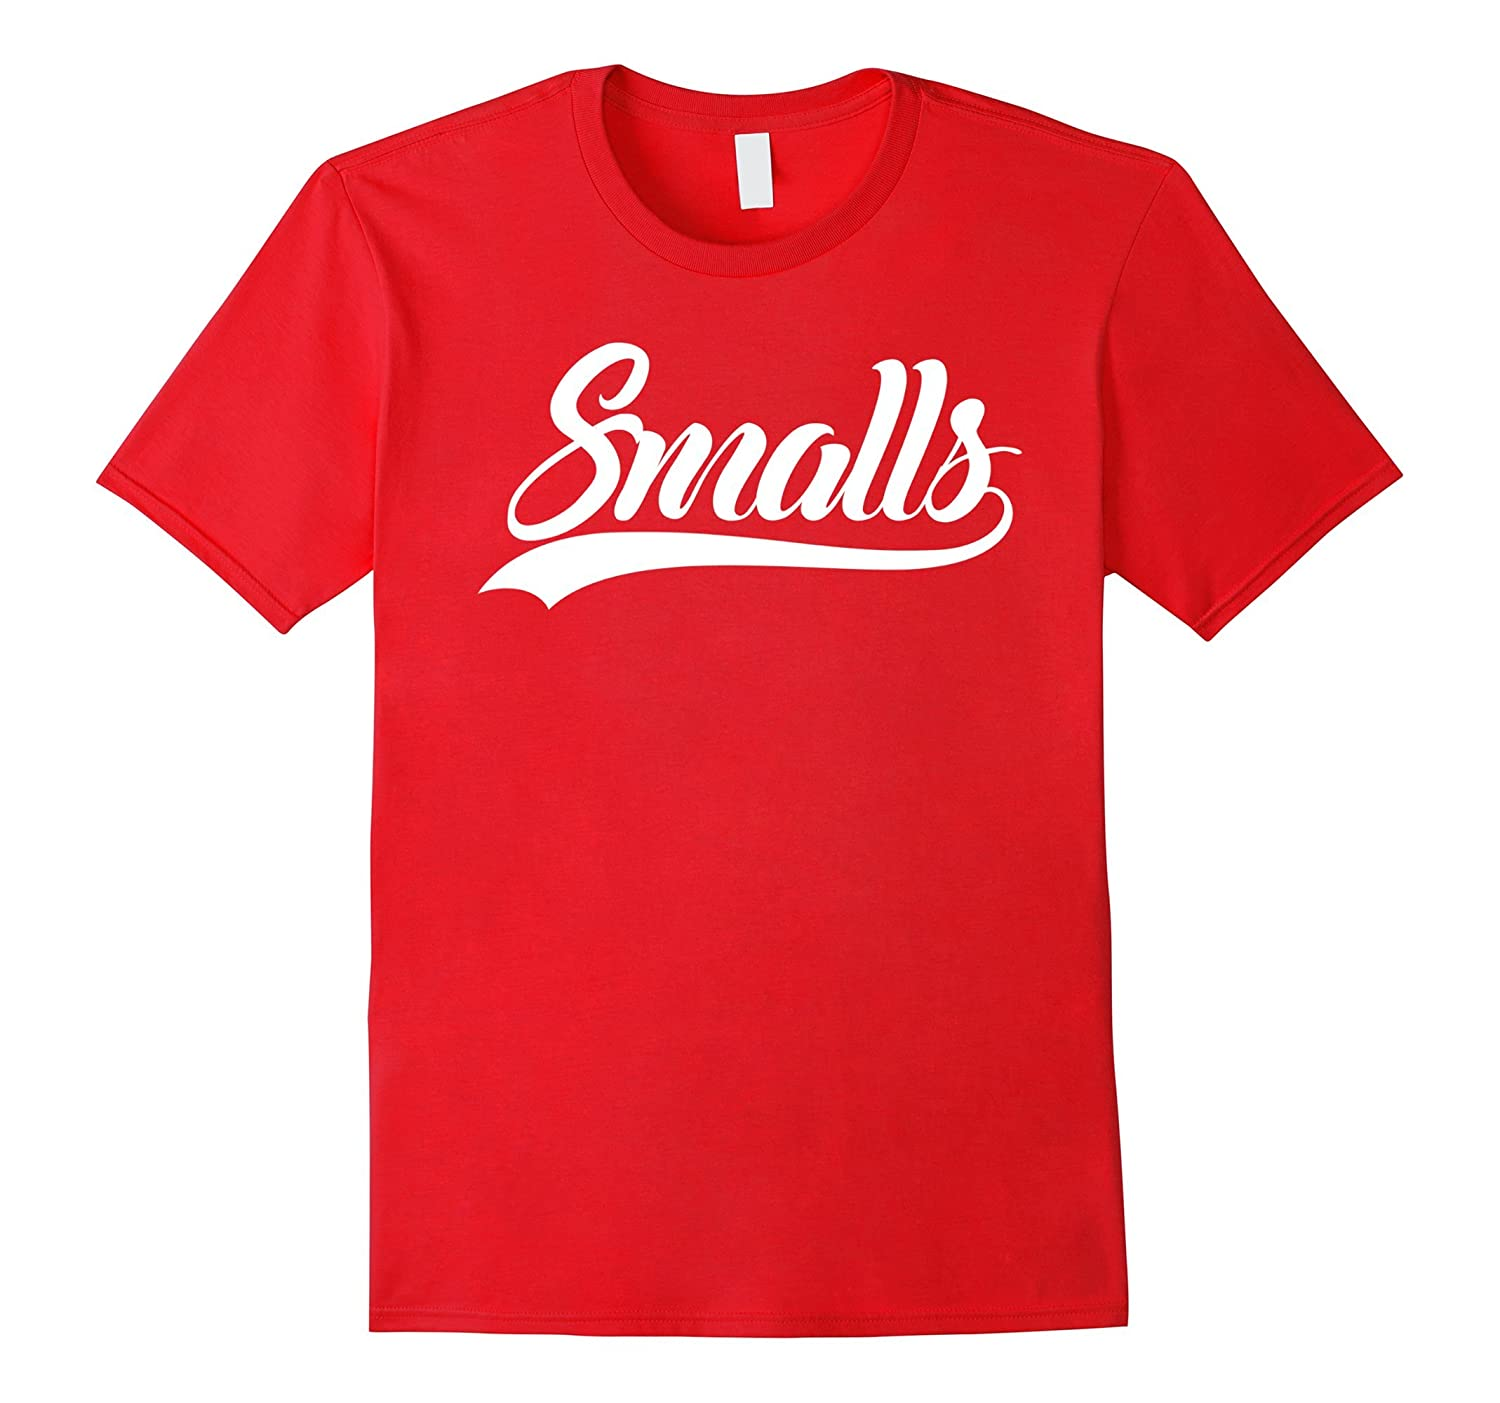 Youre killin me smalls Tshirt Sale Off-TH